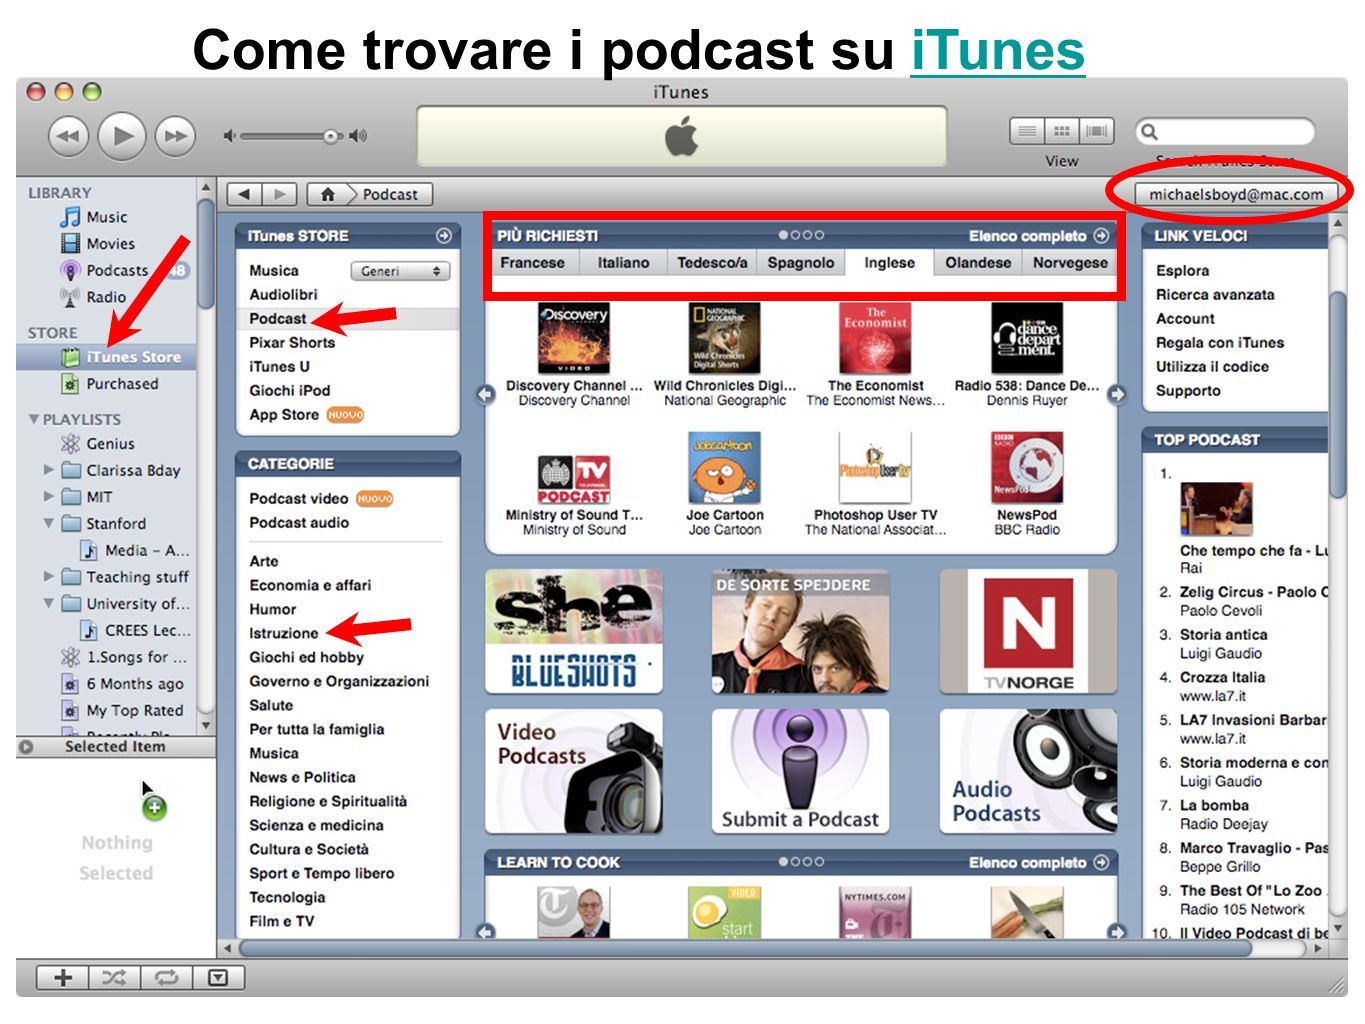 Come trovare i podcast su iTunesiTunes